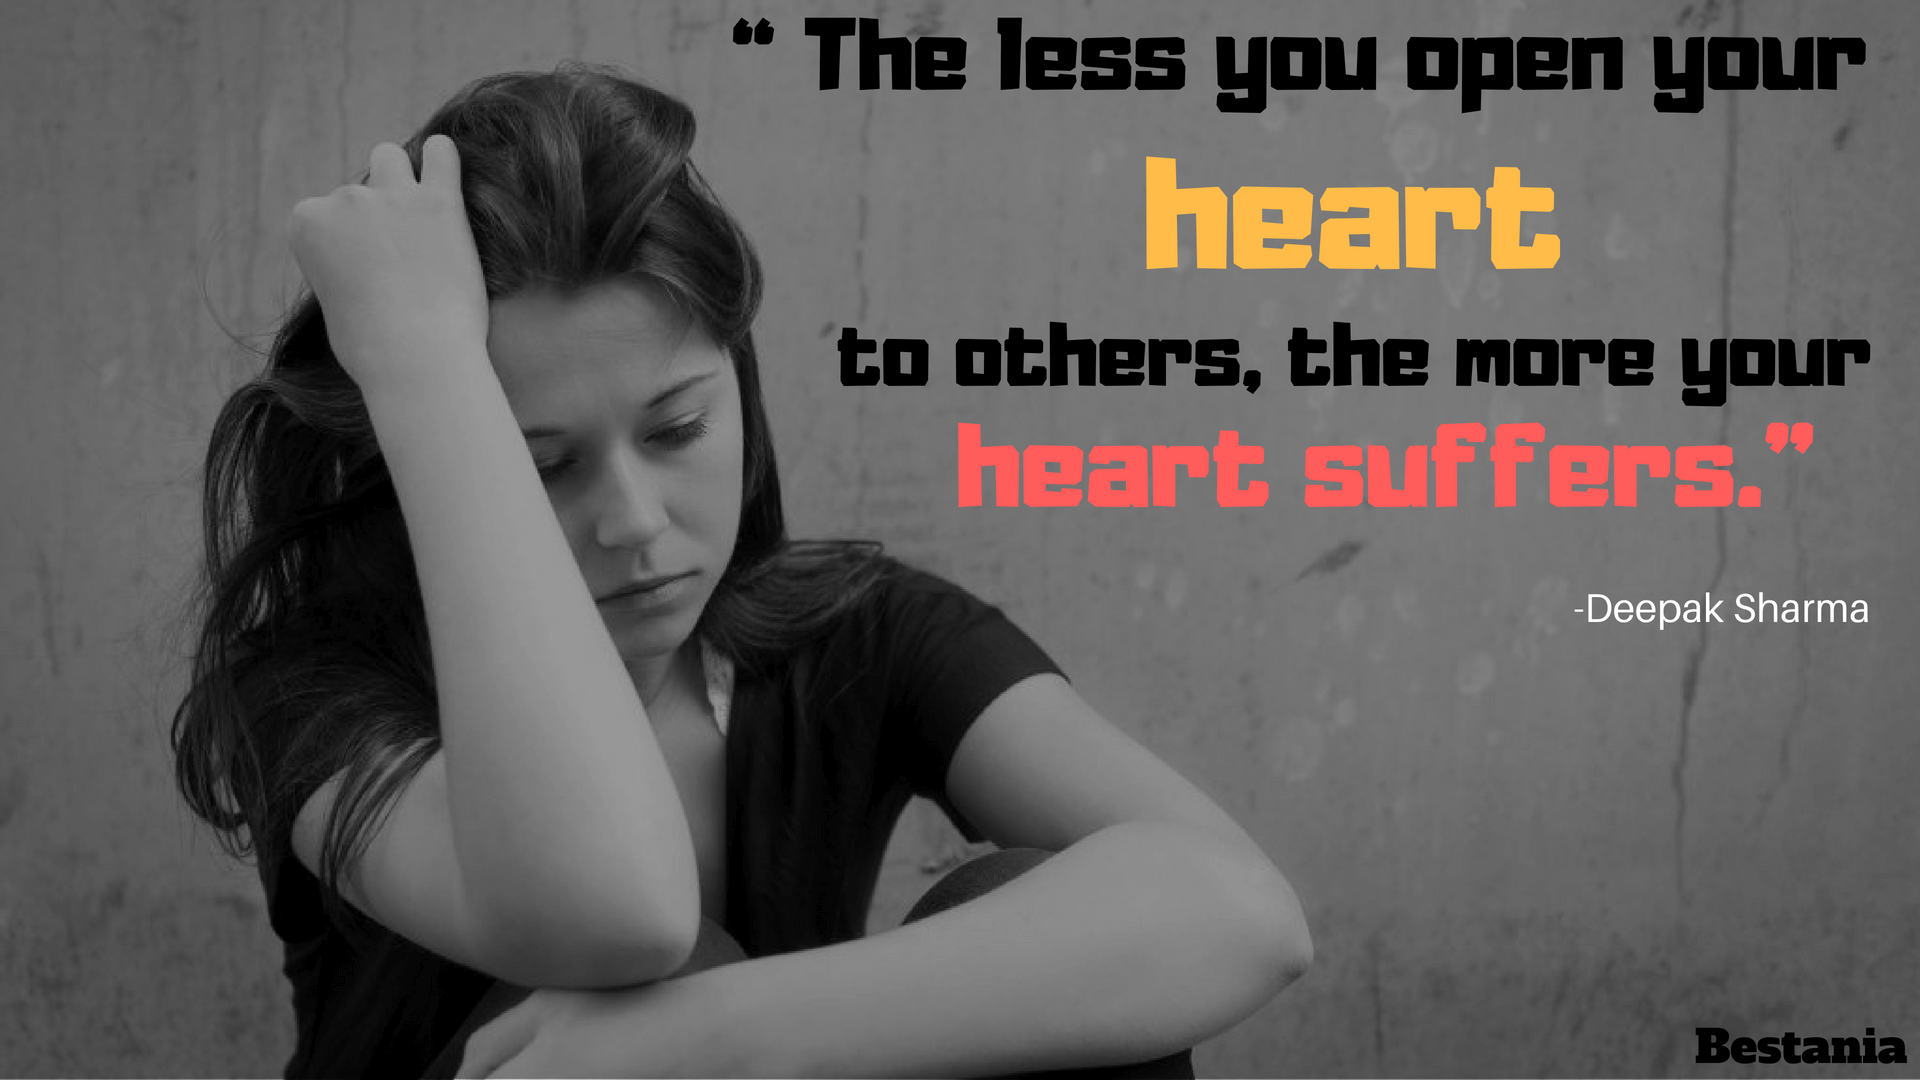 """THE LESS YOU OPEN YOUR HEART TO OTHERS, THE MORE YOUR HEART SUFFERS."" – DEEPAK CHOPRA"